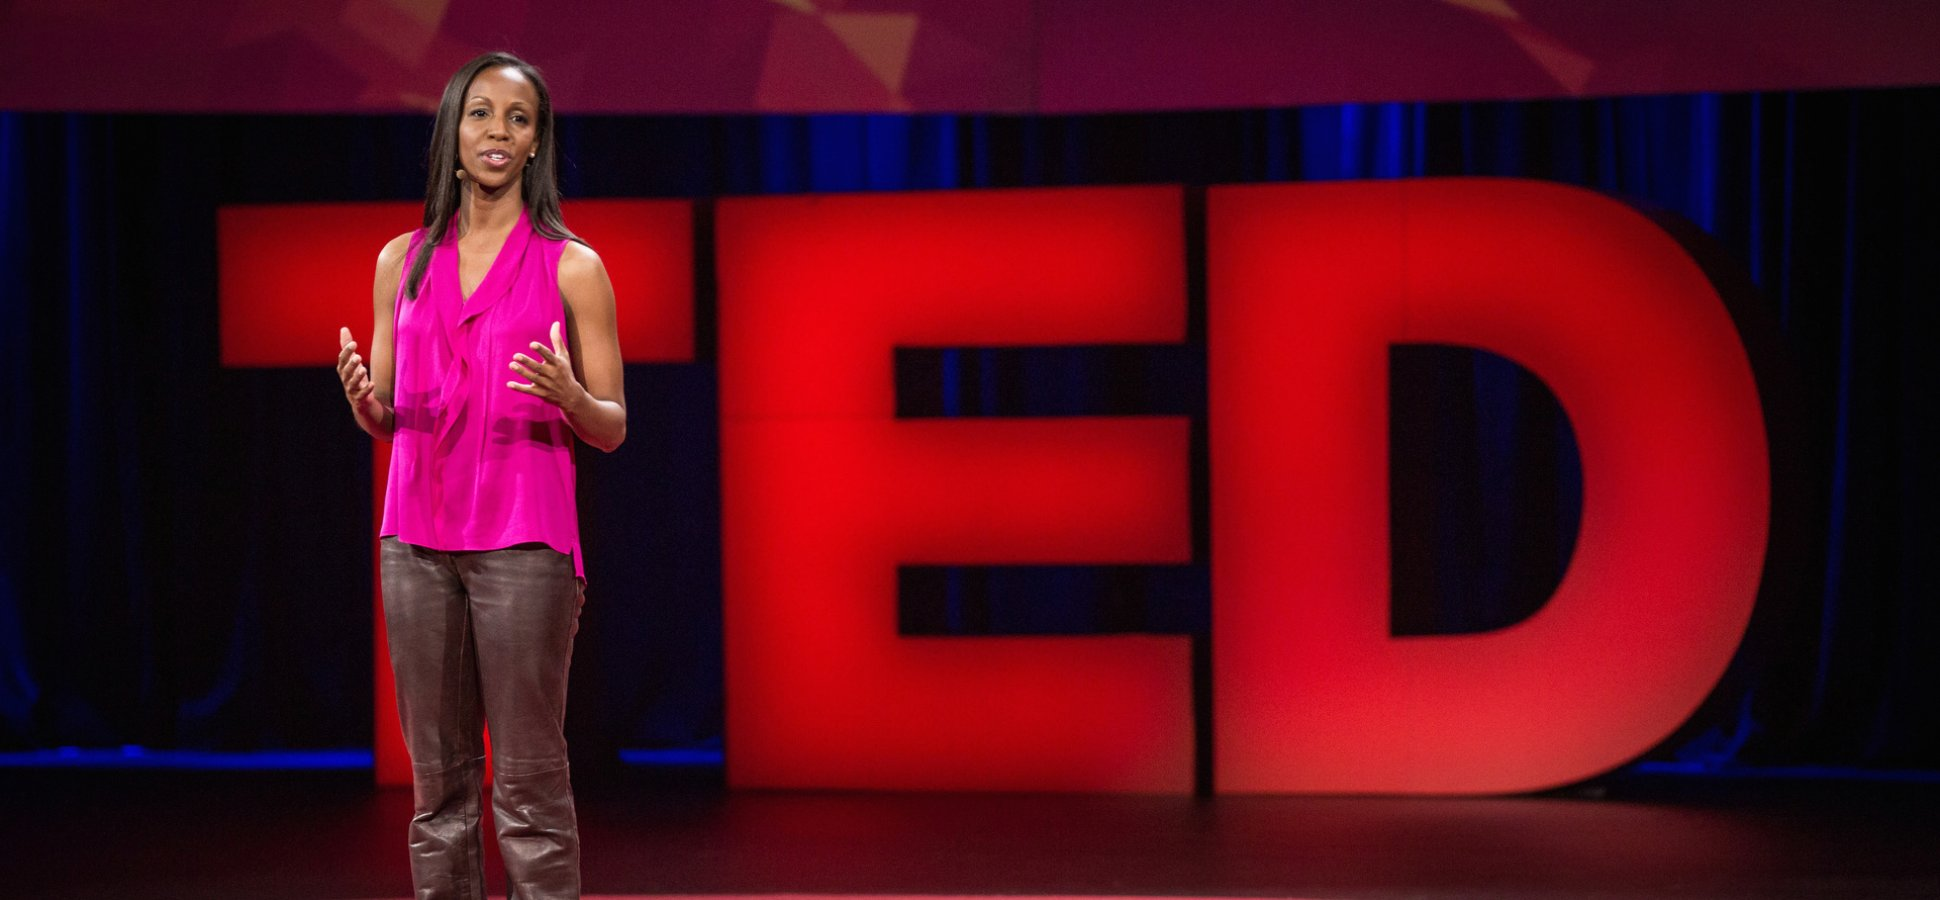 Sarah Lewis on the Ted stage in Vancouver 2015